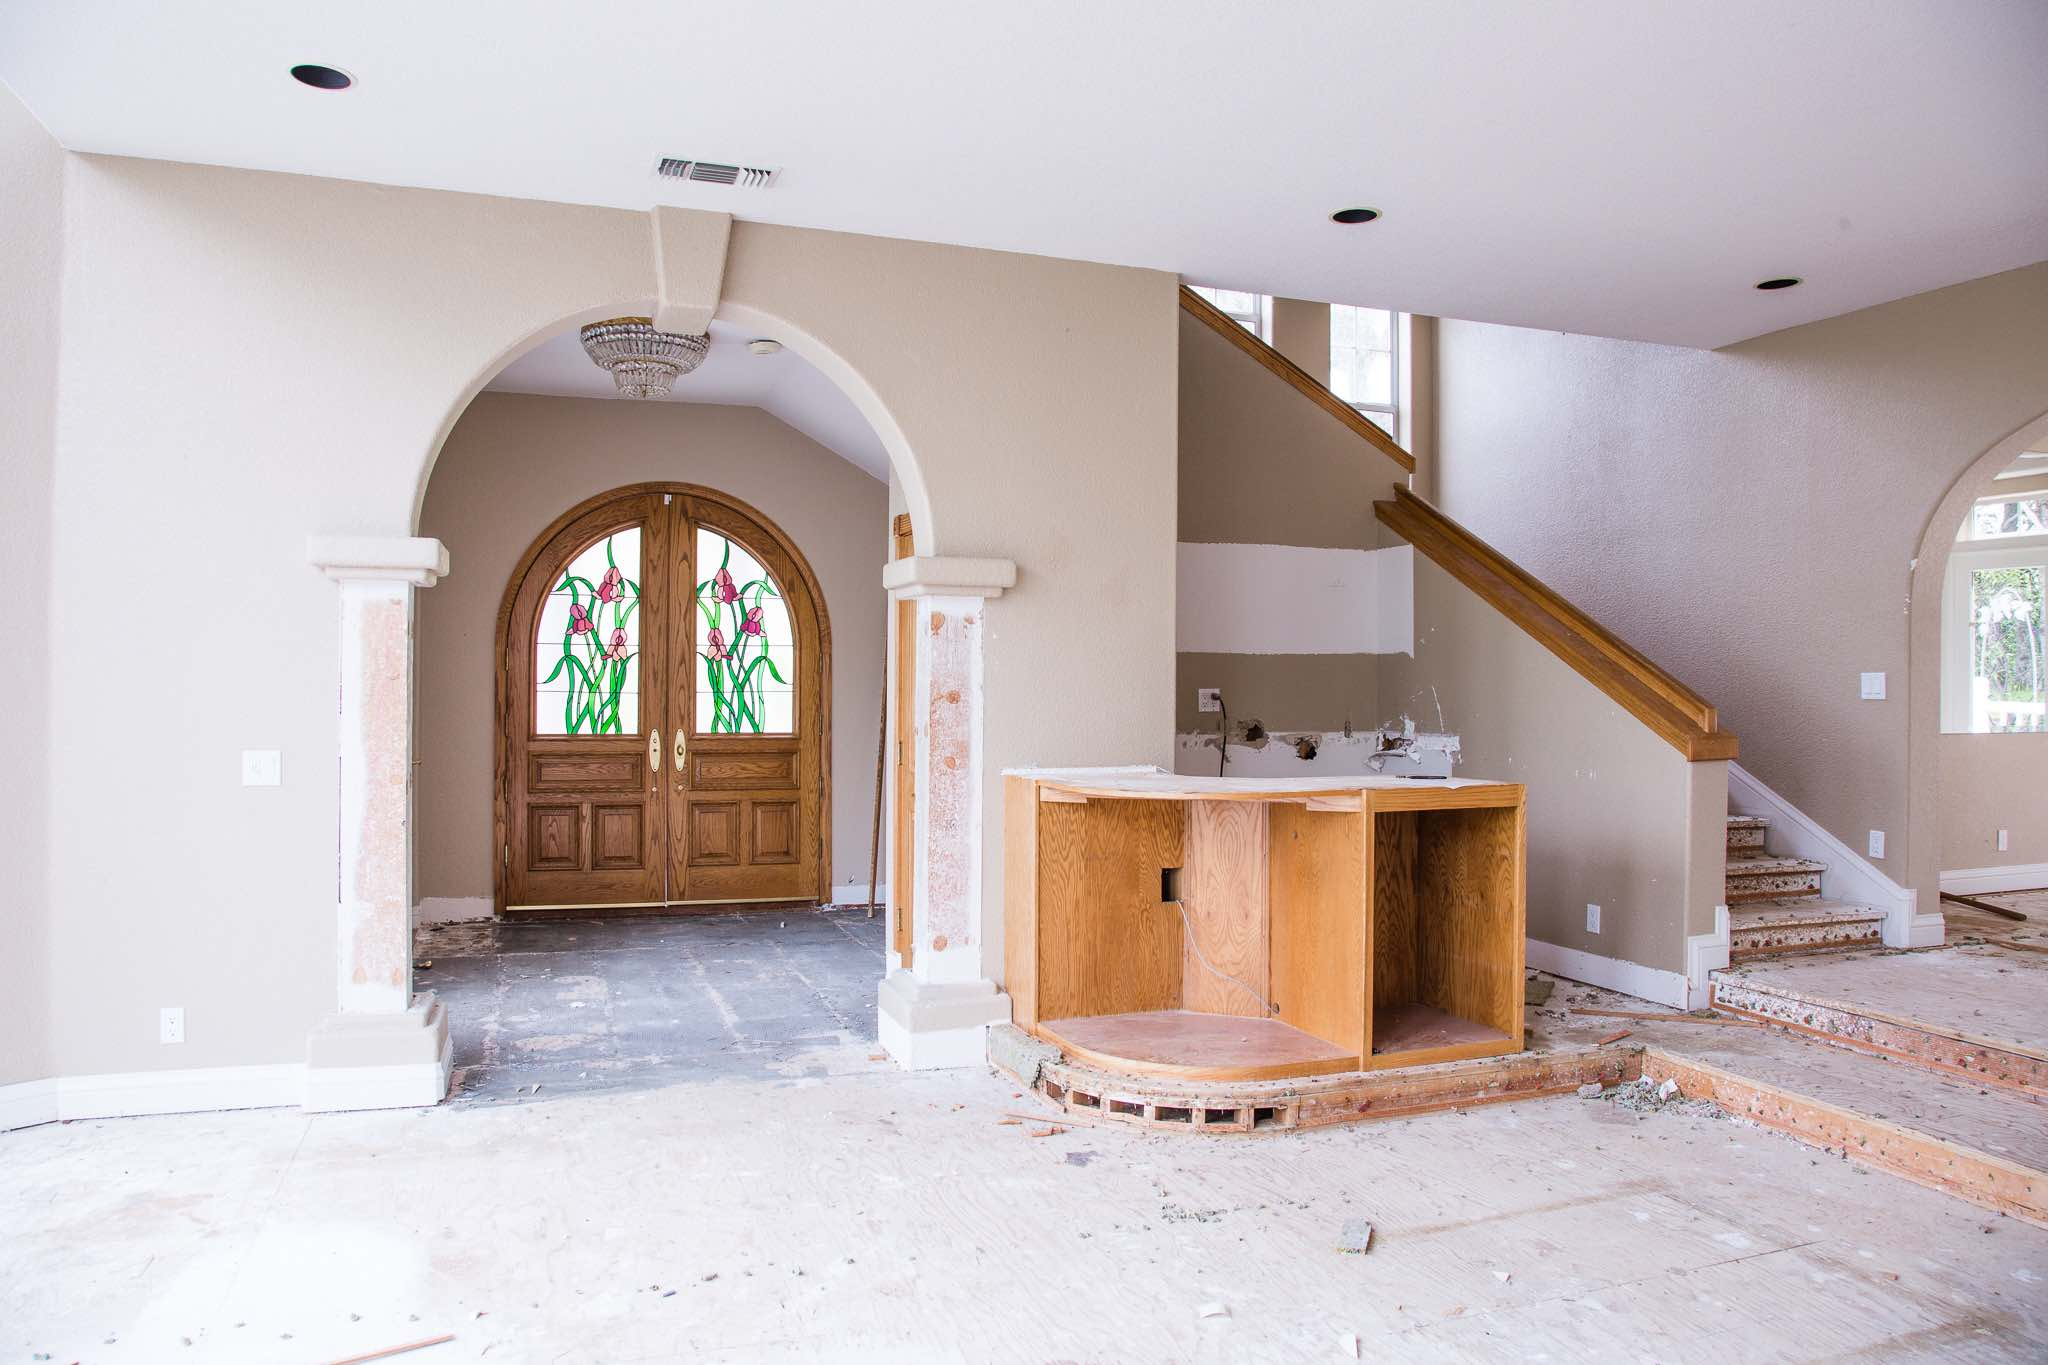 GREAT ROOM, LOOKING BACK TOWARDS THE ENTRY AND FRONT DOOR, WITH WET BAR ON THE RIGHT